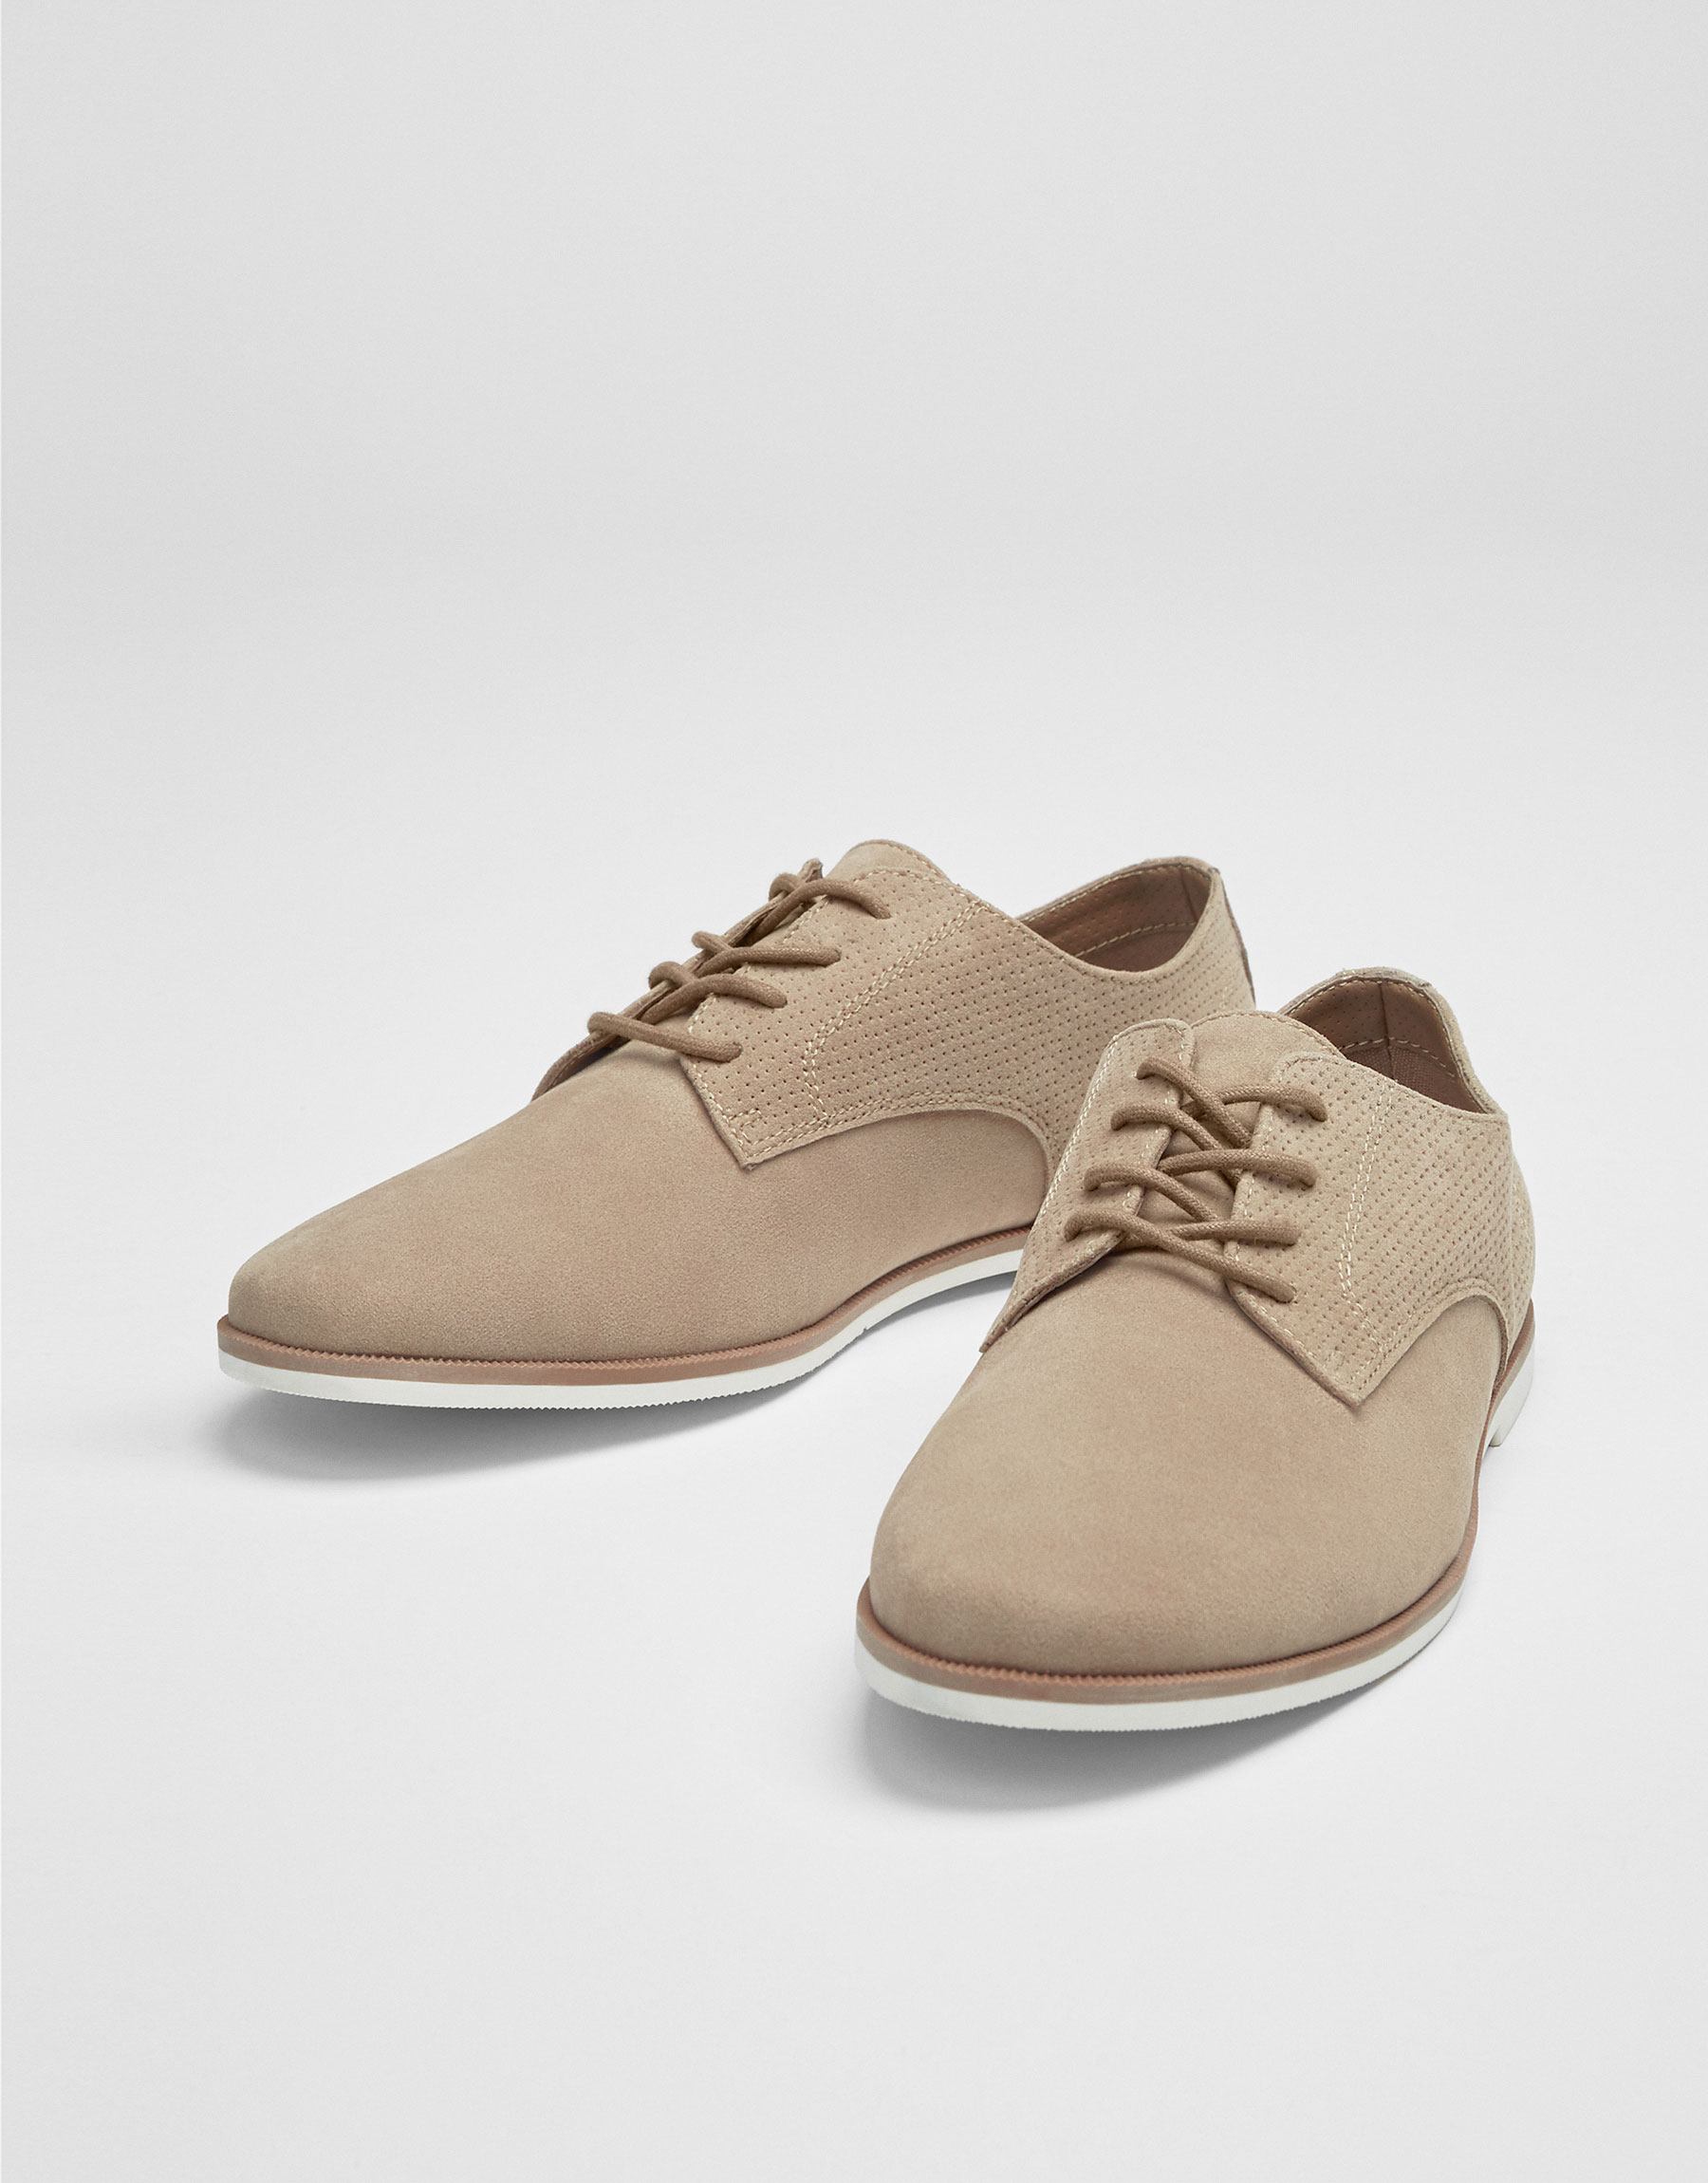 Slim shoes with broguing